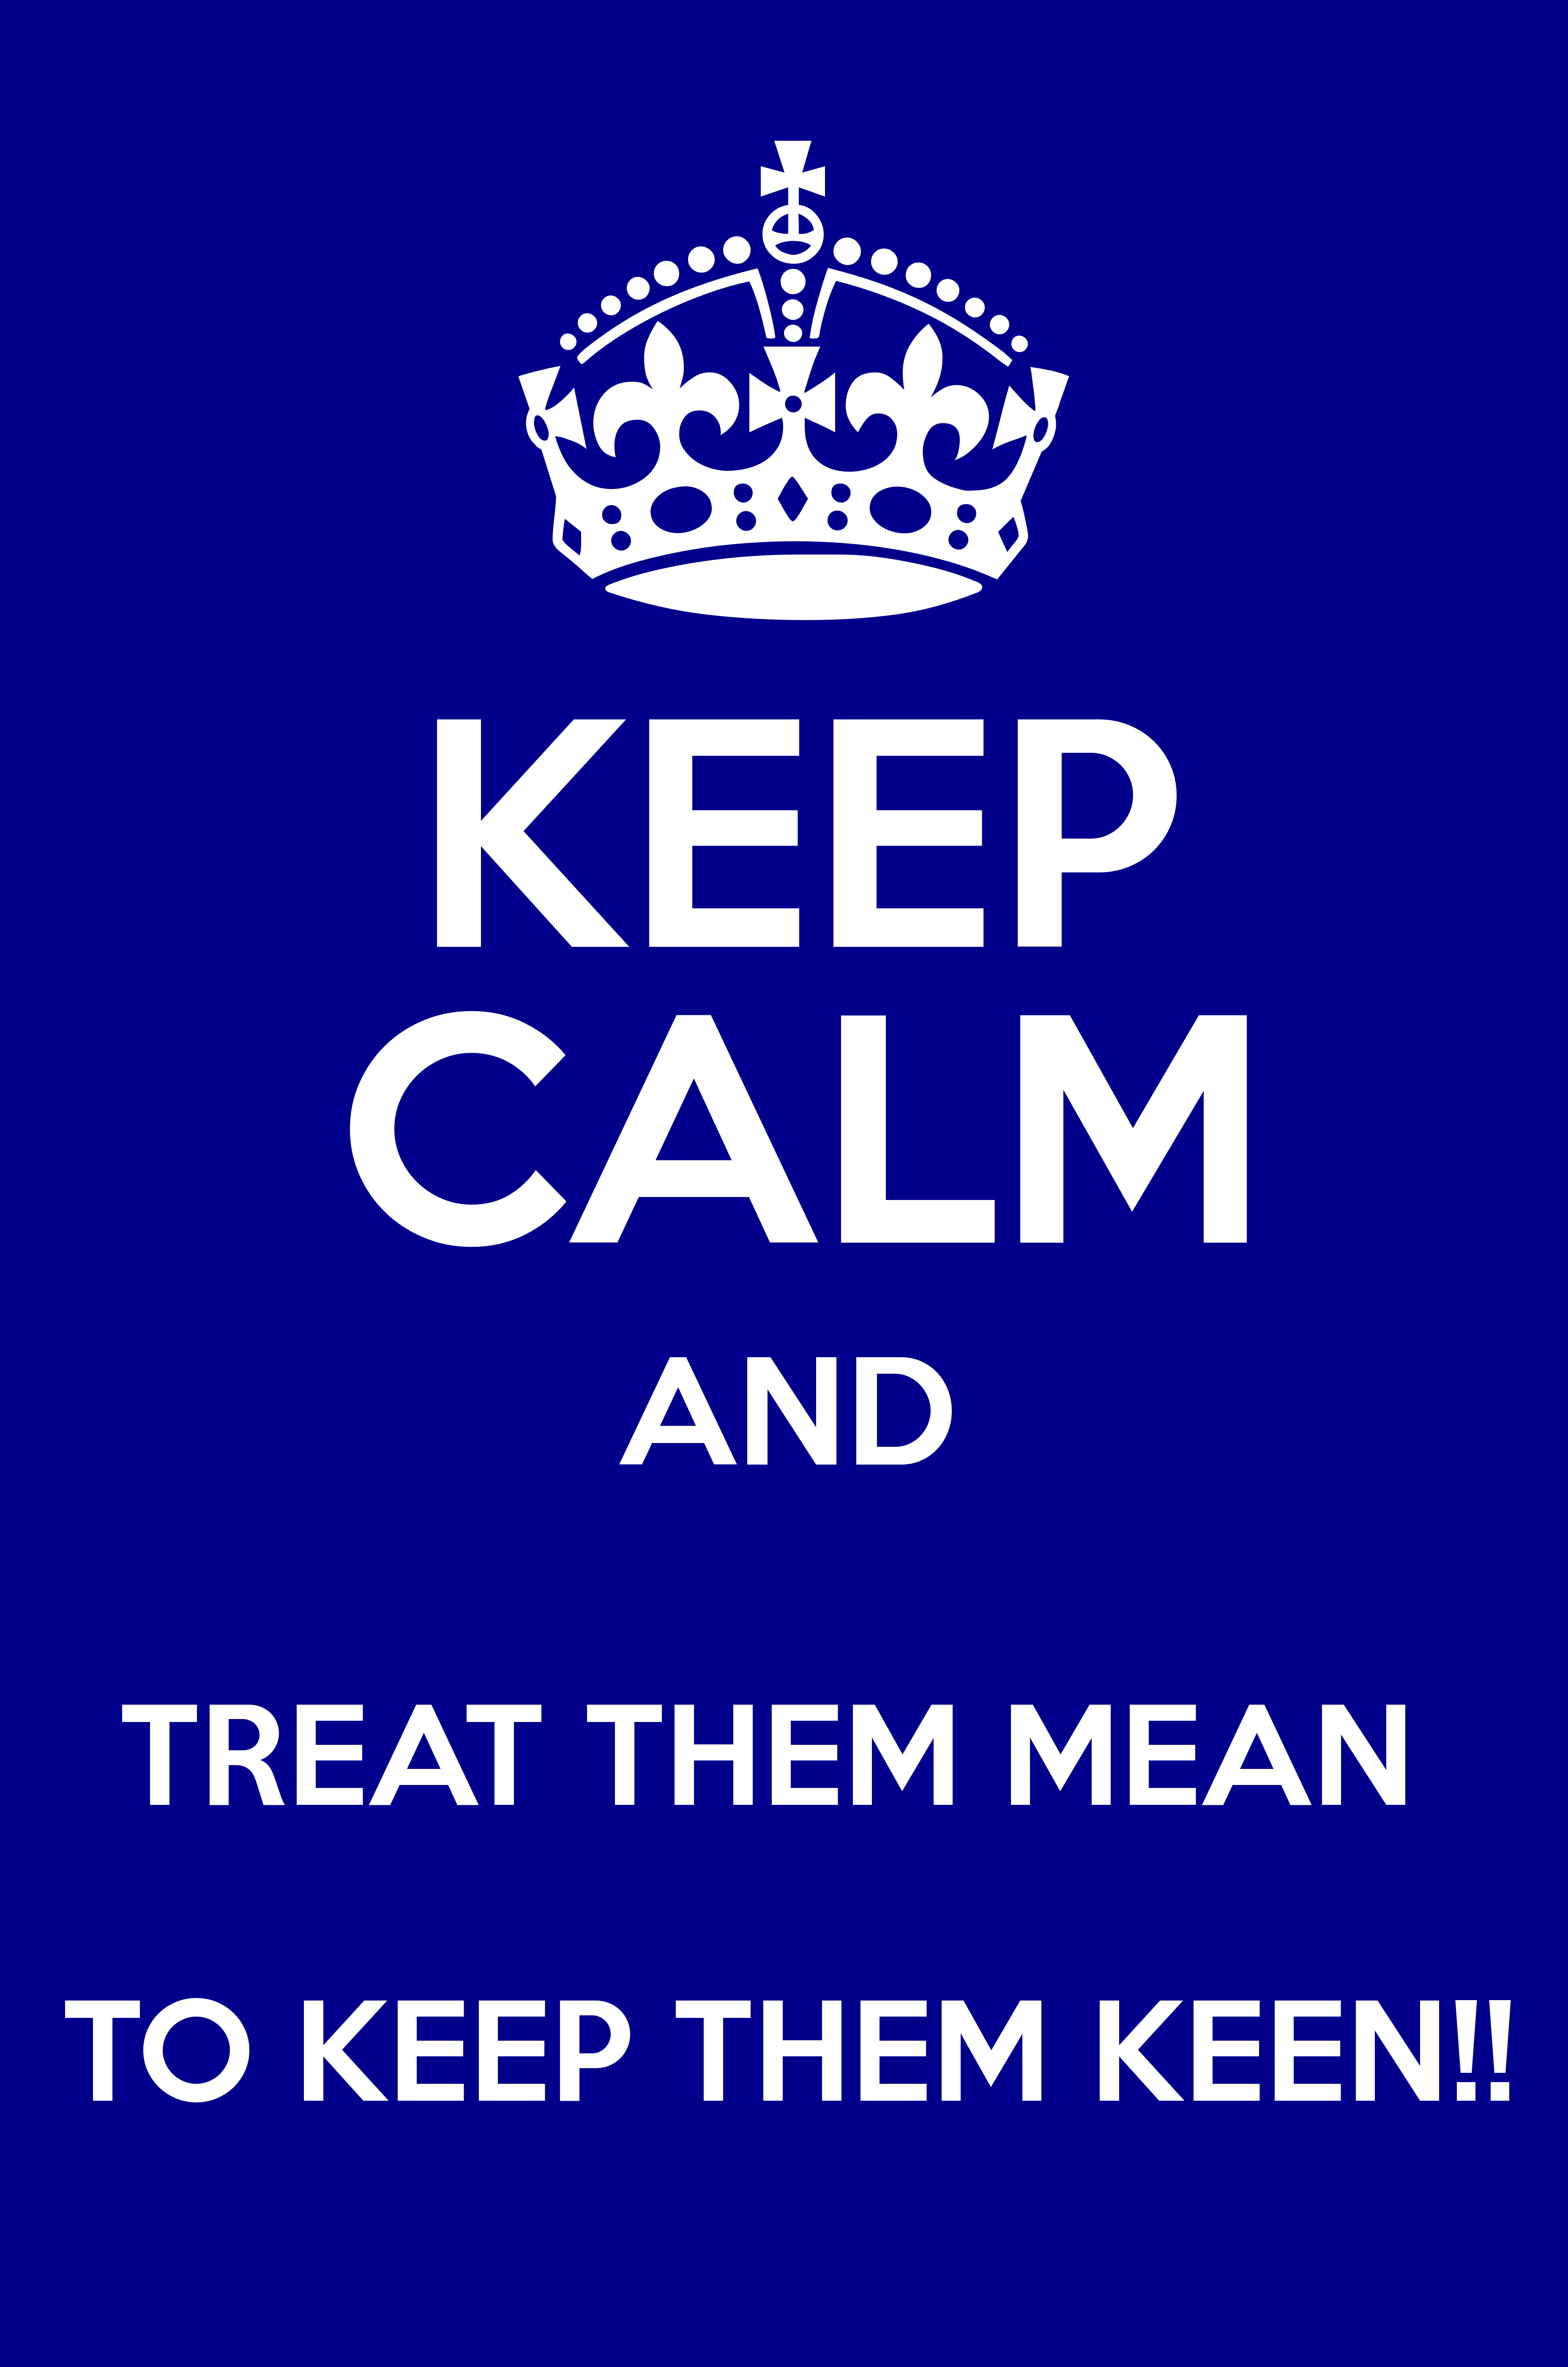 Keen Treat Keep Them And Mean Them